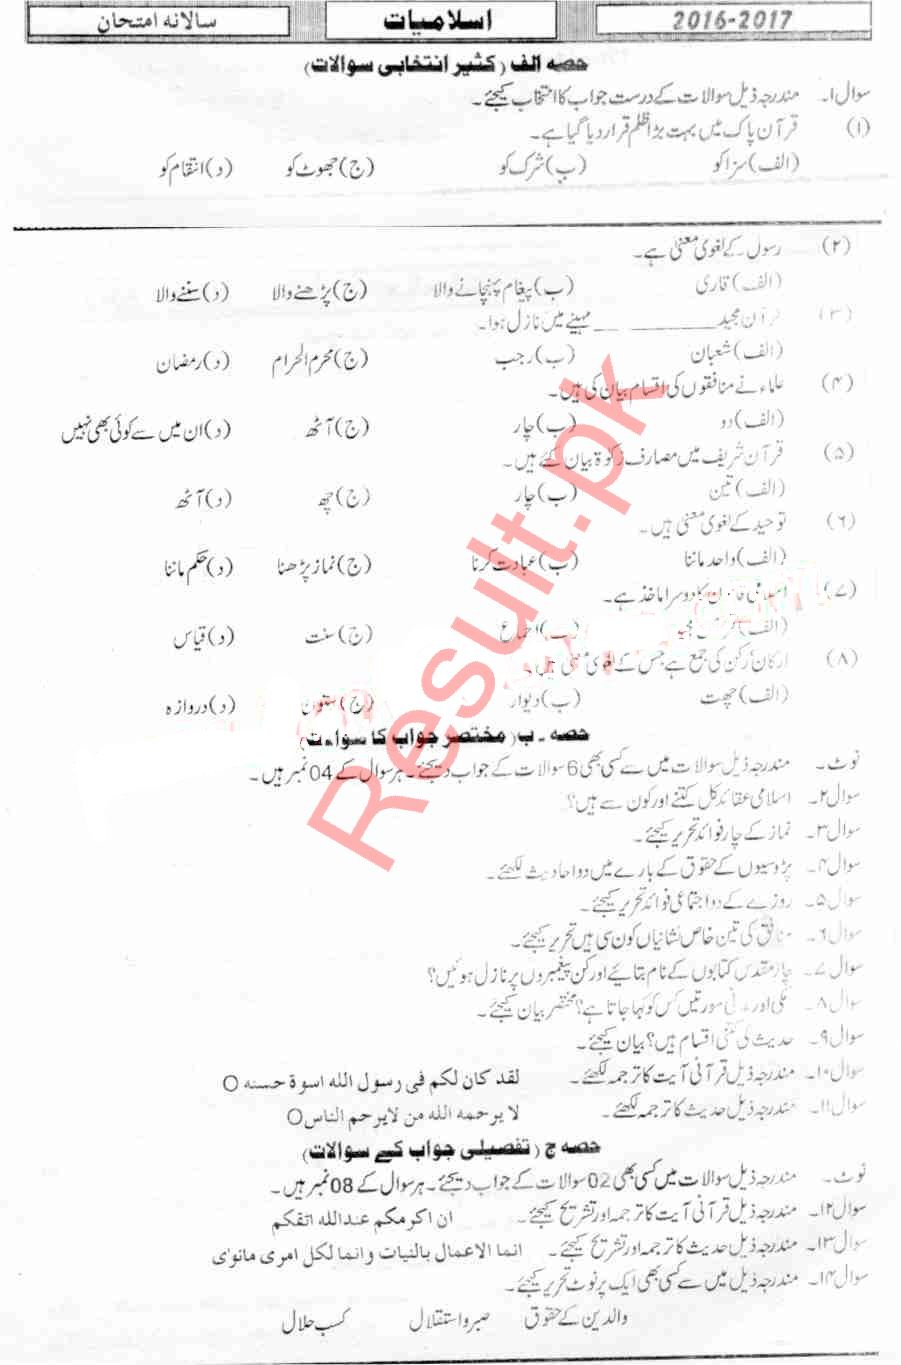 BISE Mirpur Khas Board Past Papers 2019 Inter Part 1 2, FA